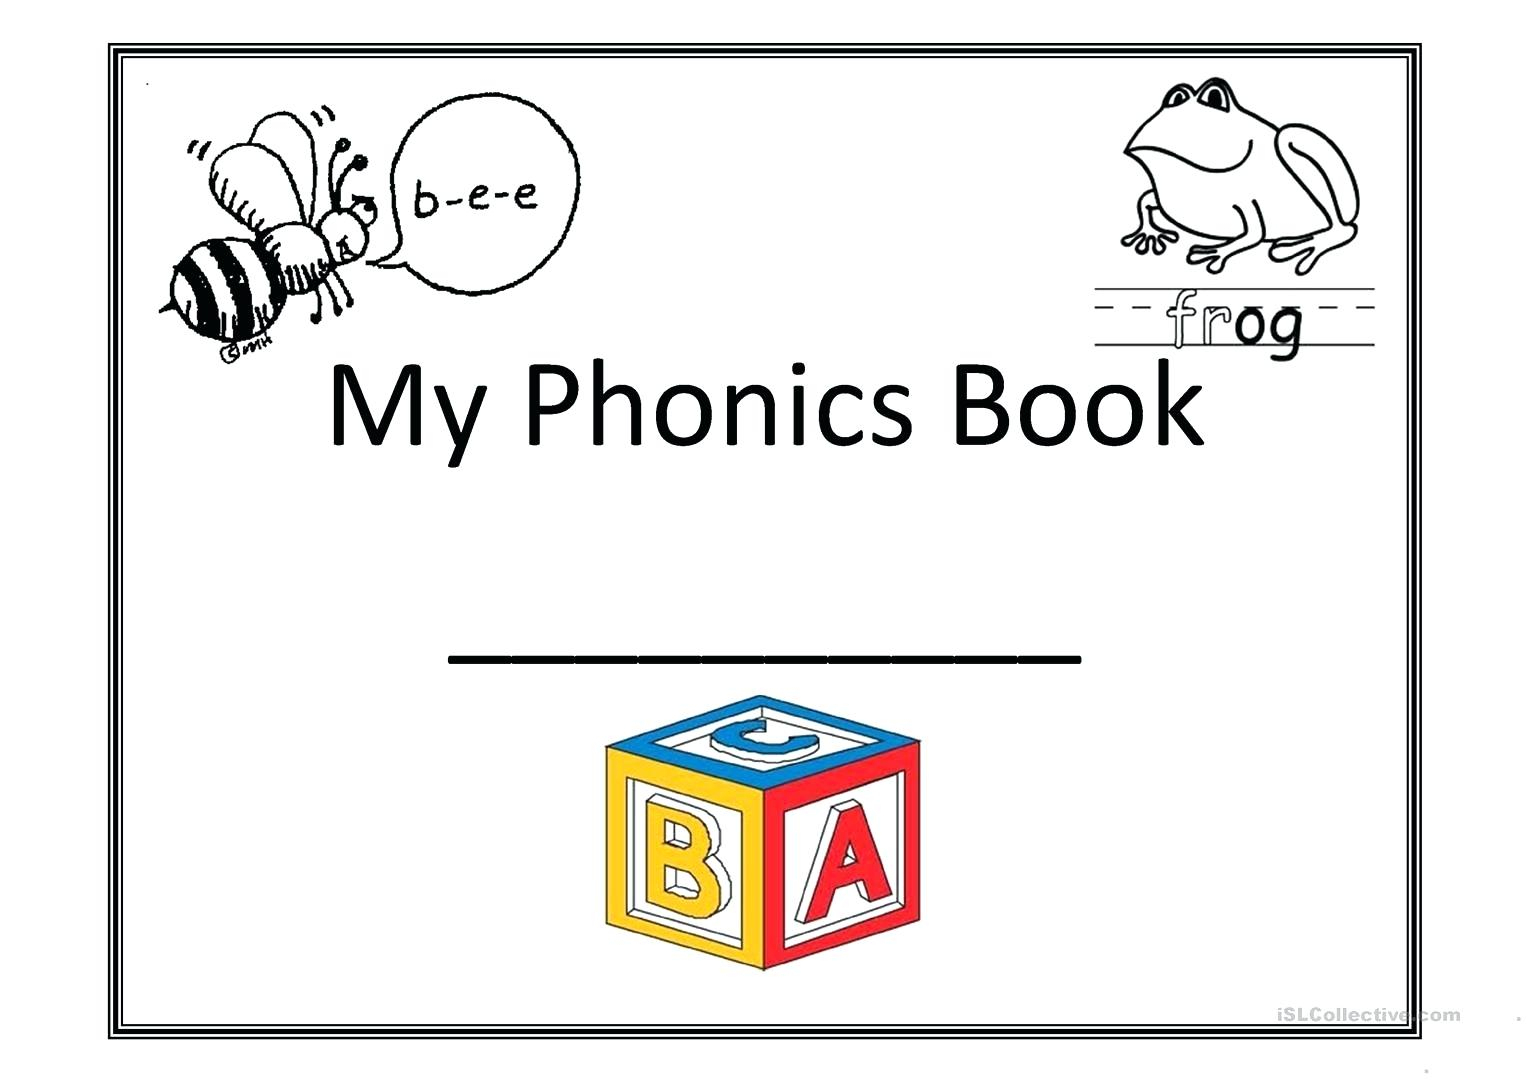 Kindergarten Phonics Books Easy Reader Page 3 Saxon Phonics - Free Printable Phonics Books For Kindergarten